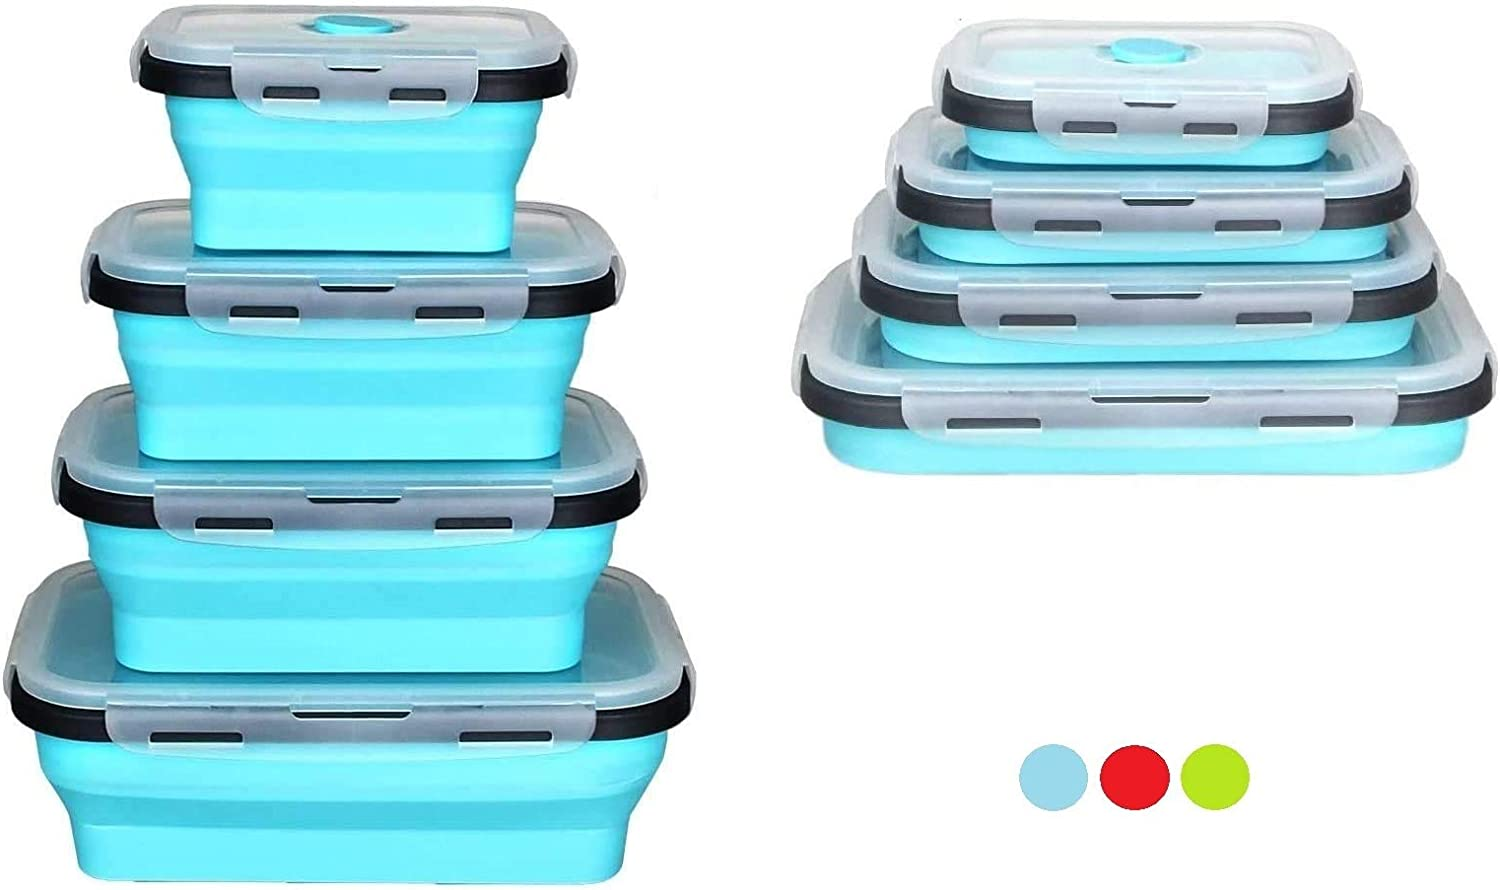 Set of 4 Collapsible Foldable Silicone Food Storage Container With BPA Free, Leftover Meal Box With Airtight Plastic Lids For Kitchen (Blue)